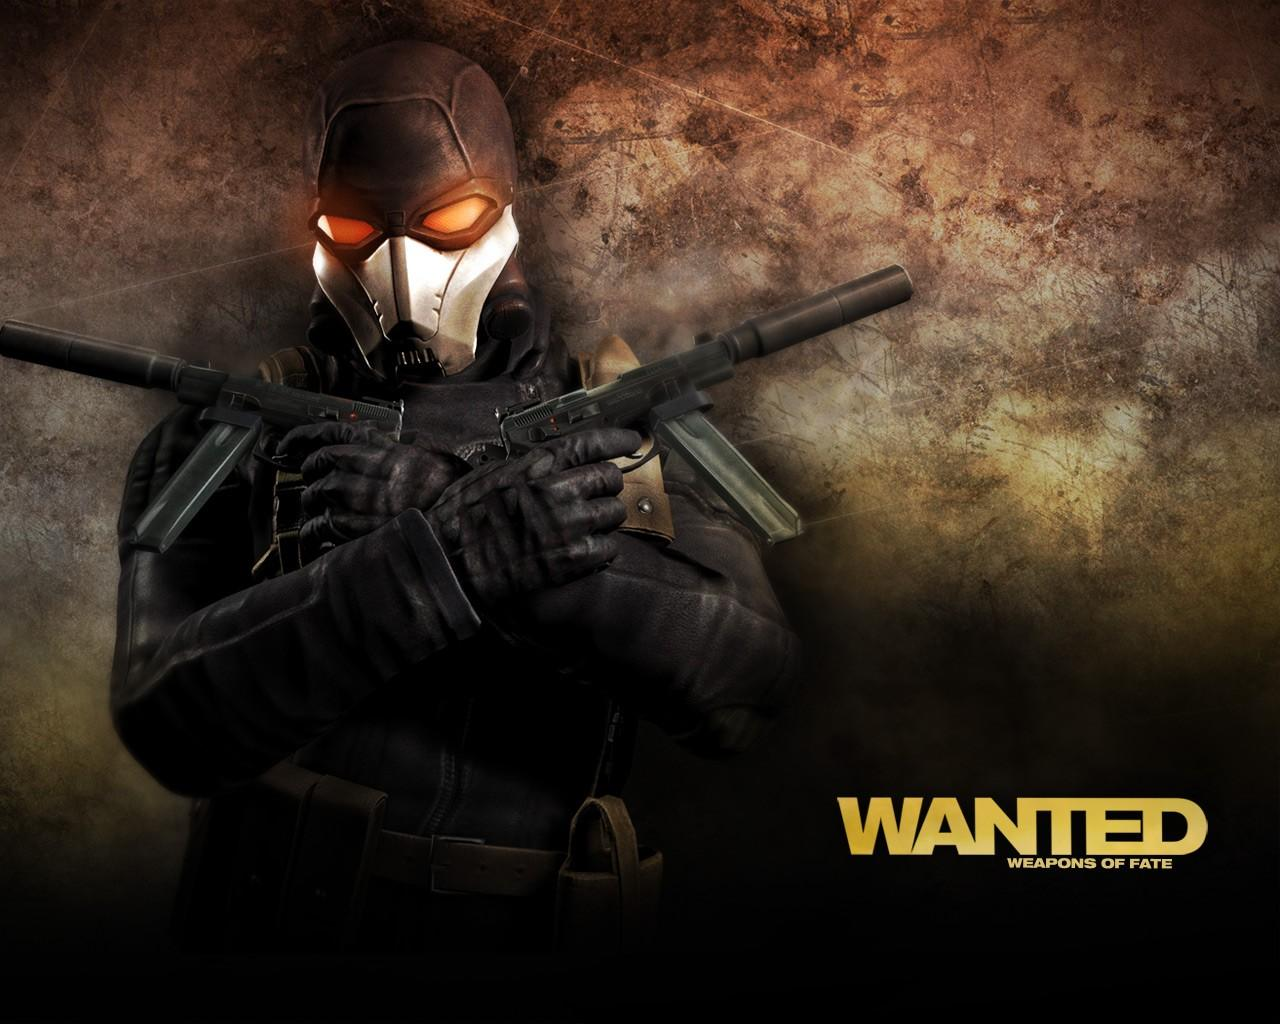 Обои Wanted Weapons of fate 1280x1024